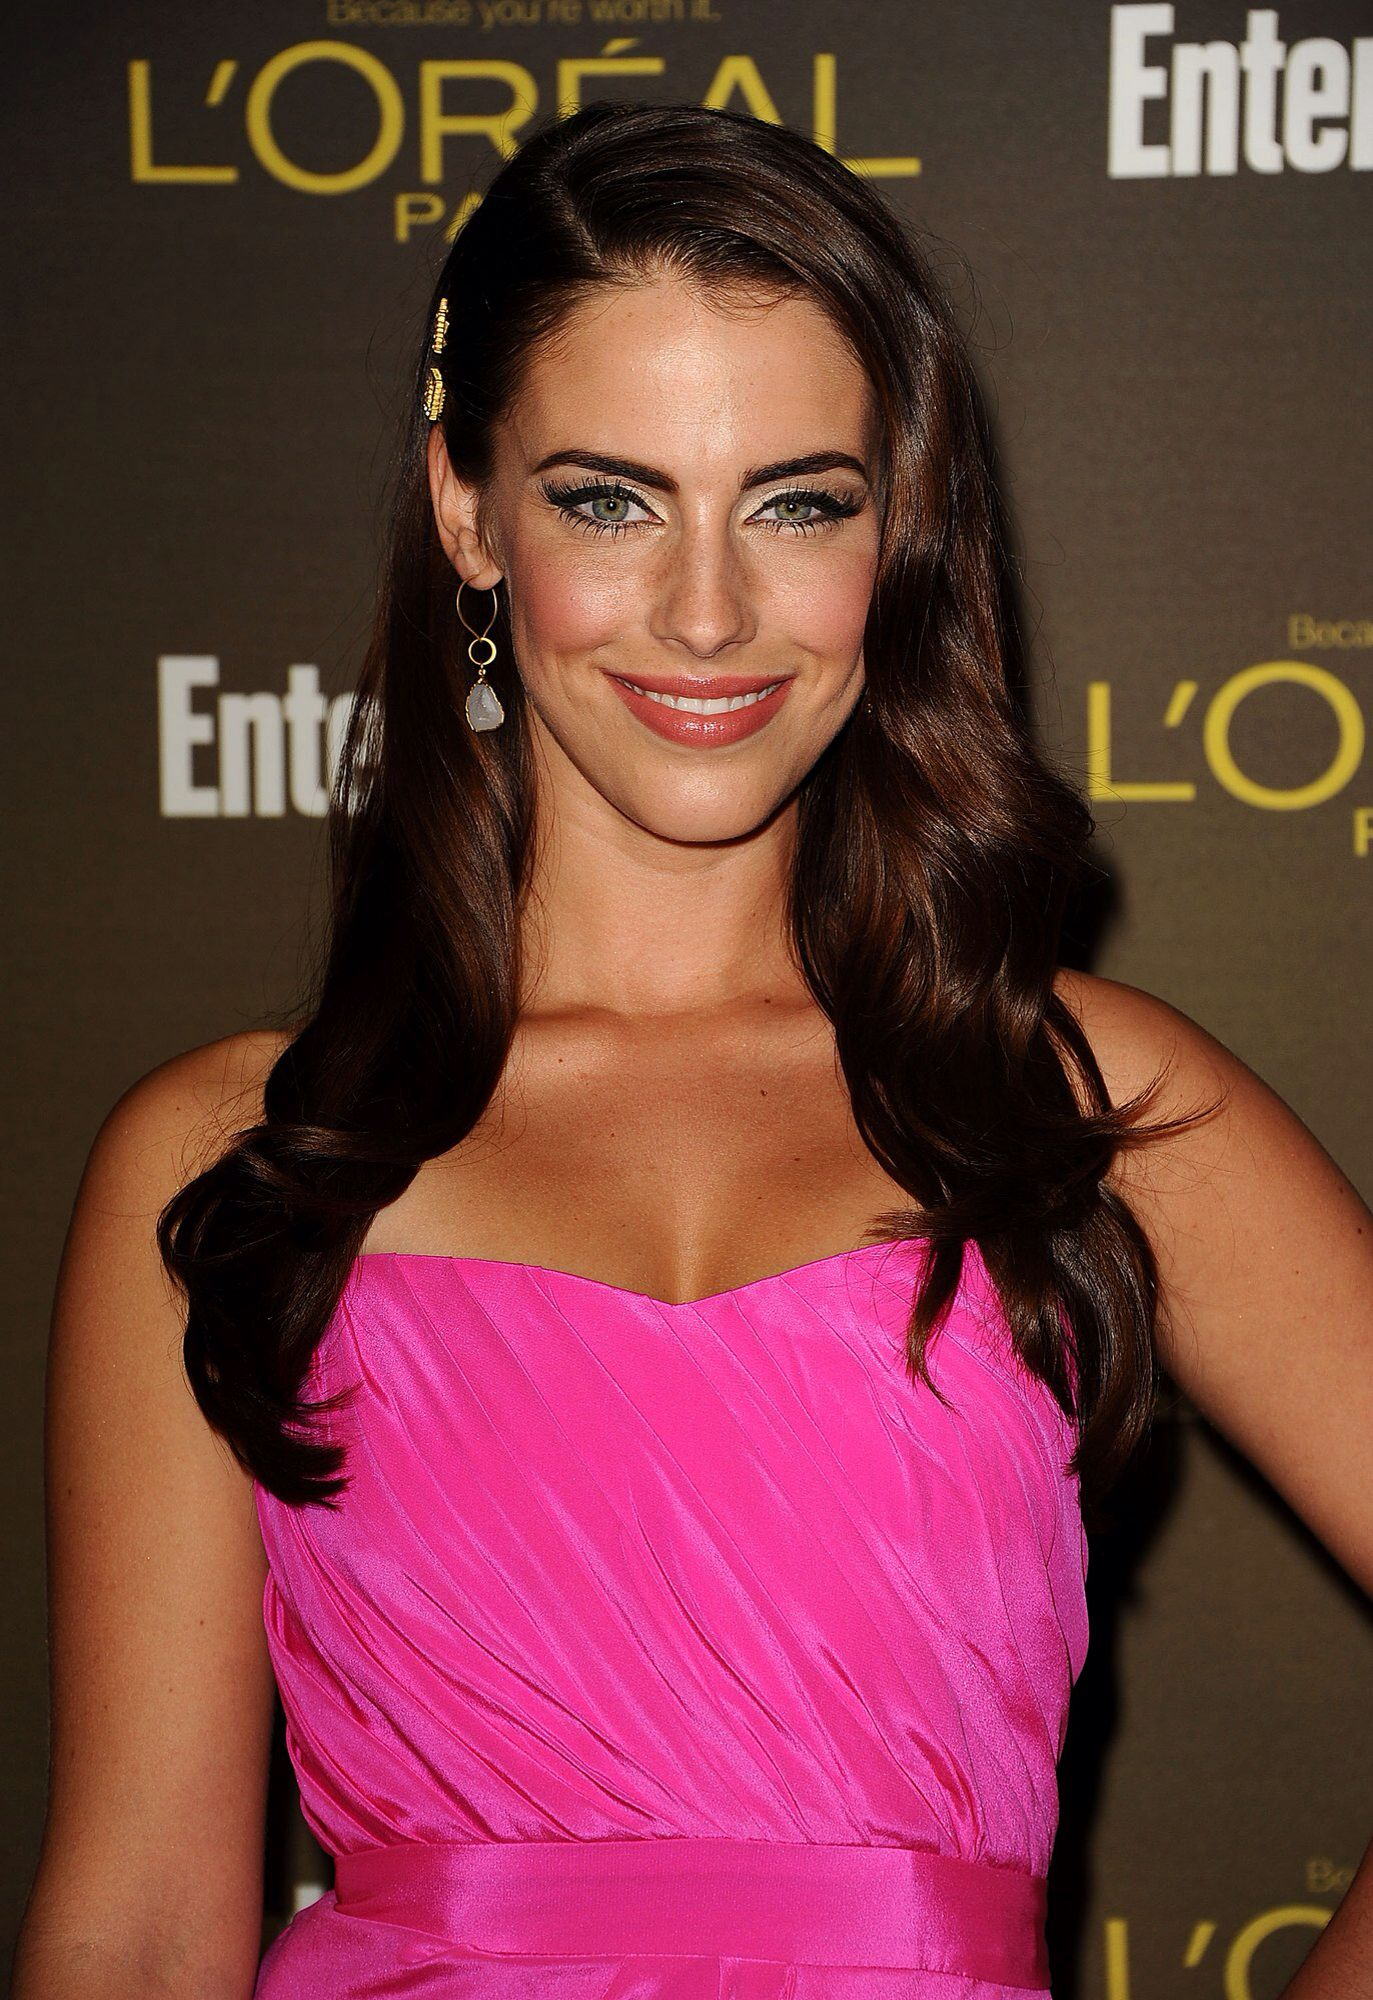 Consider, that Jessica lowndes young necessary words